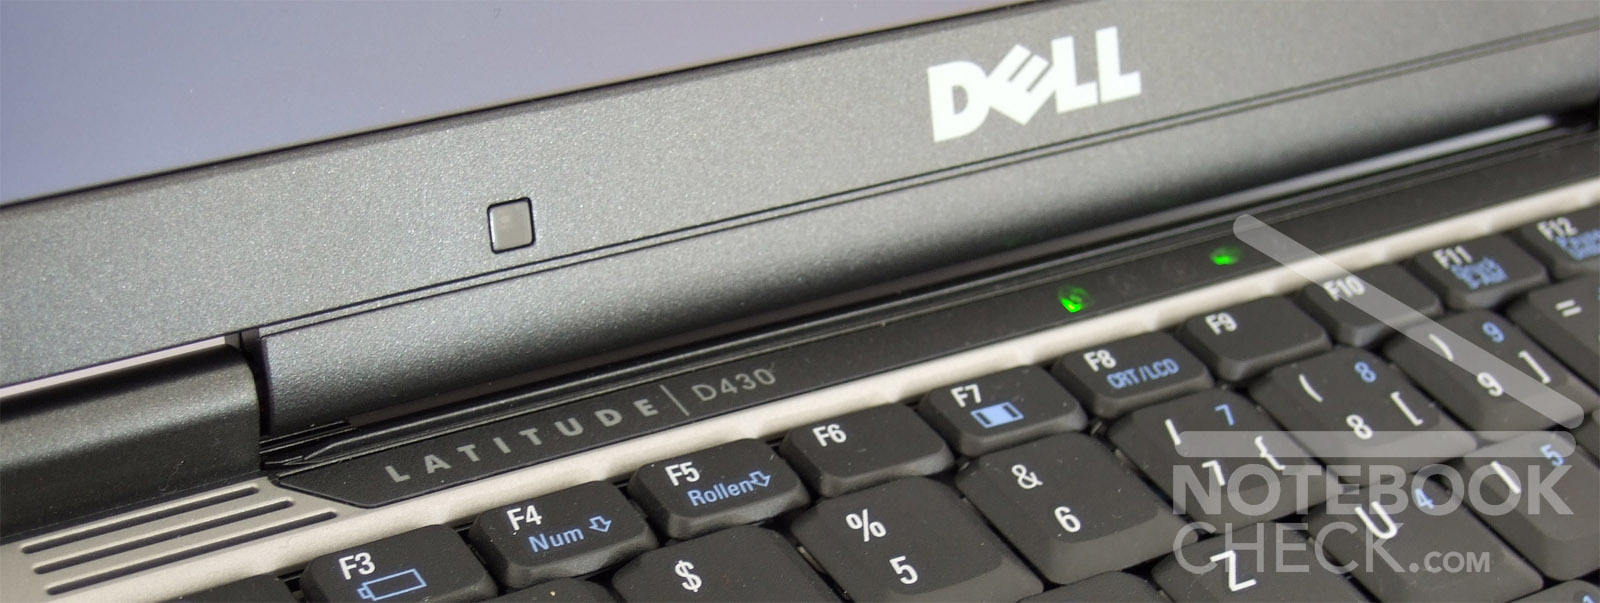 DELL LATITUDE D430 SIM CARD DRIVERS WINDOWS 7 (2019)